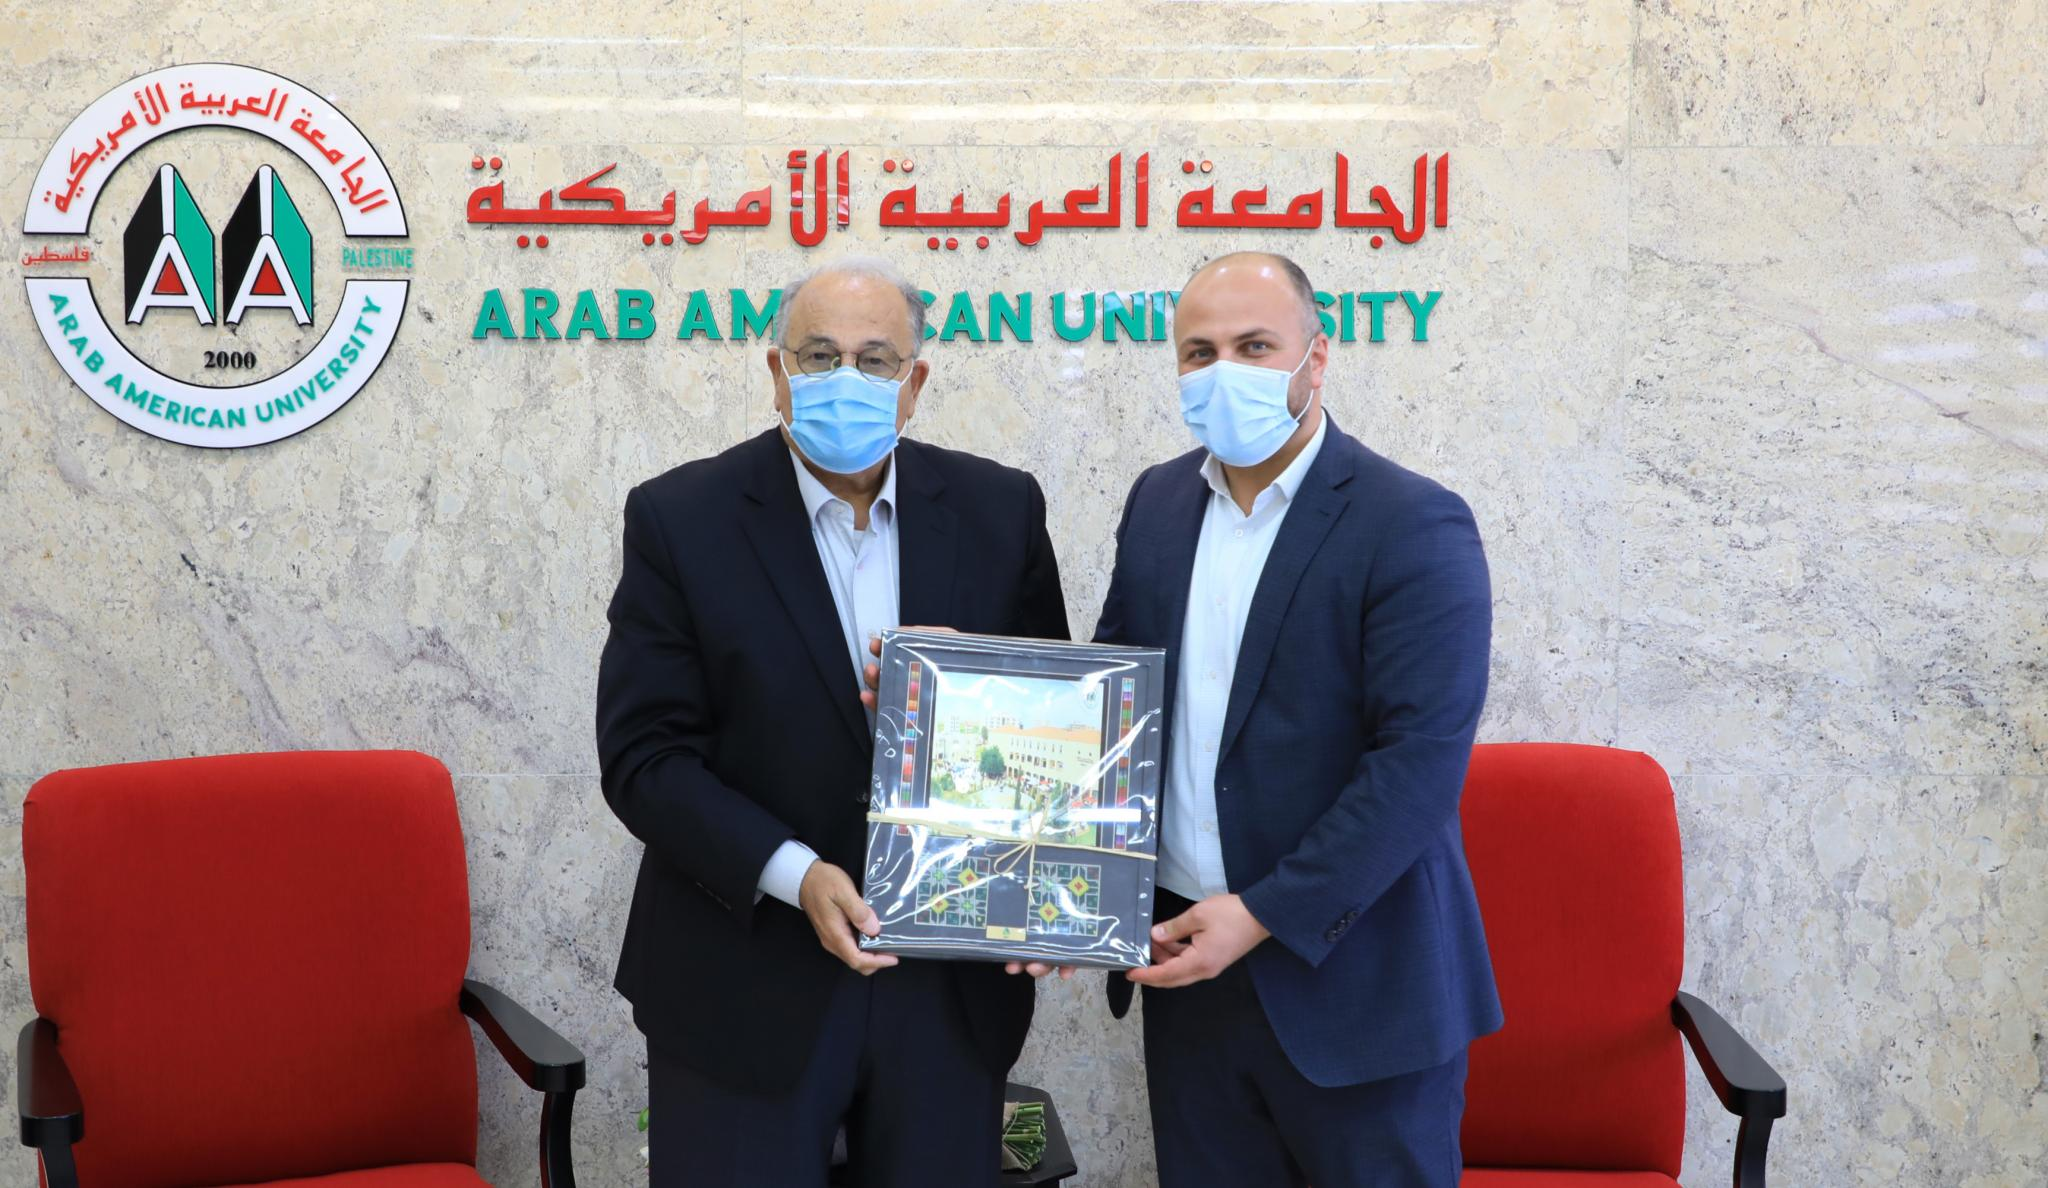 Jawwal gifting AAUP in its 20th anniversary